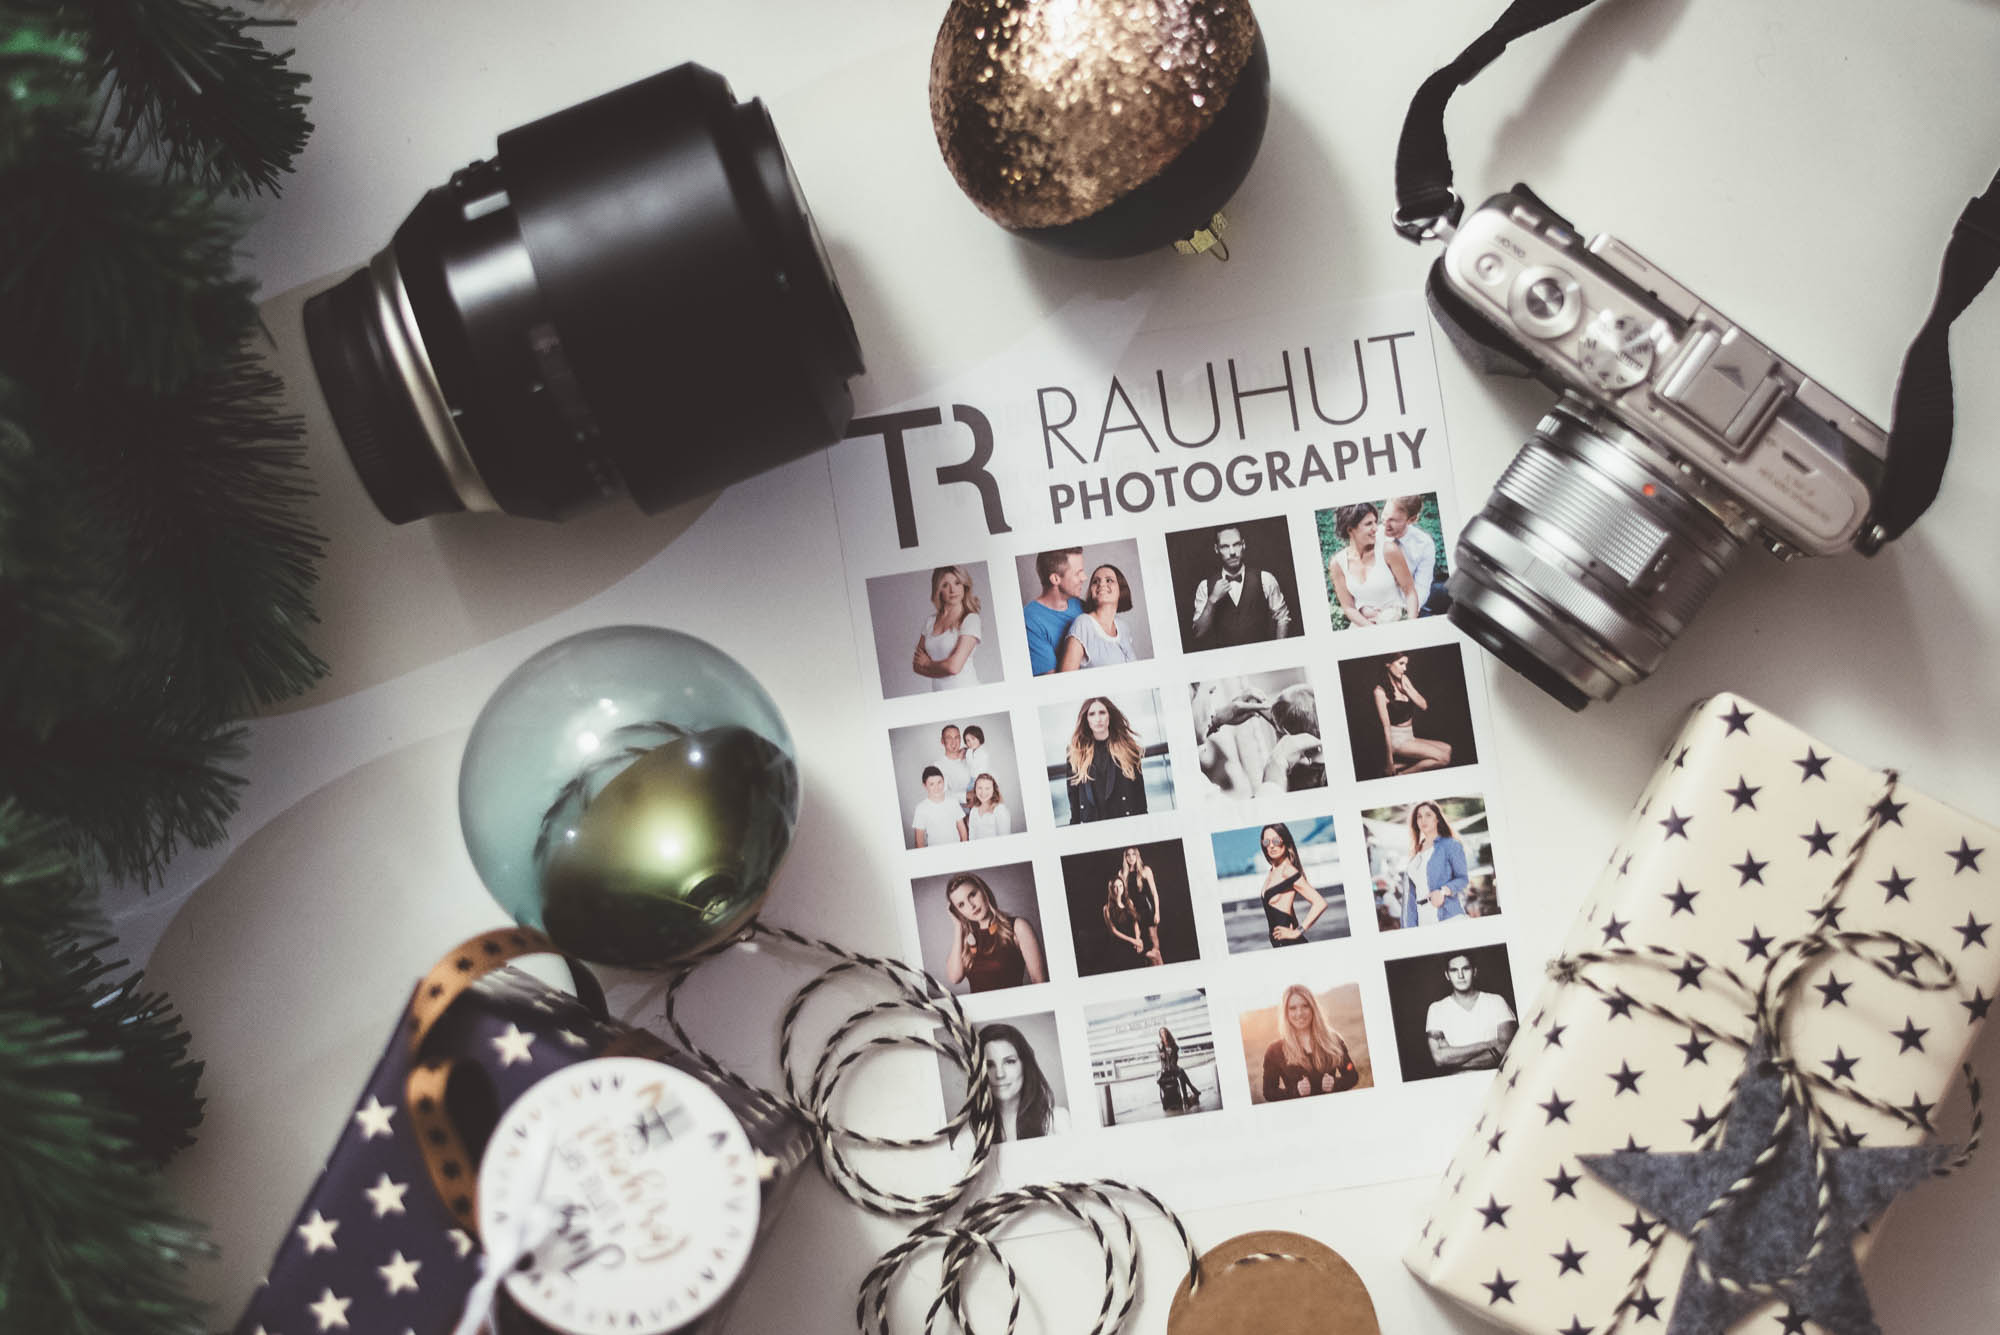 Christmas Gift Guide for Her | Photoshooting with Rauhut Photography | Lisa Fiege